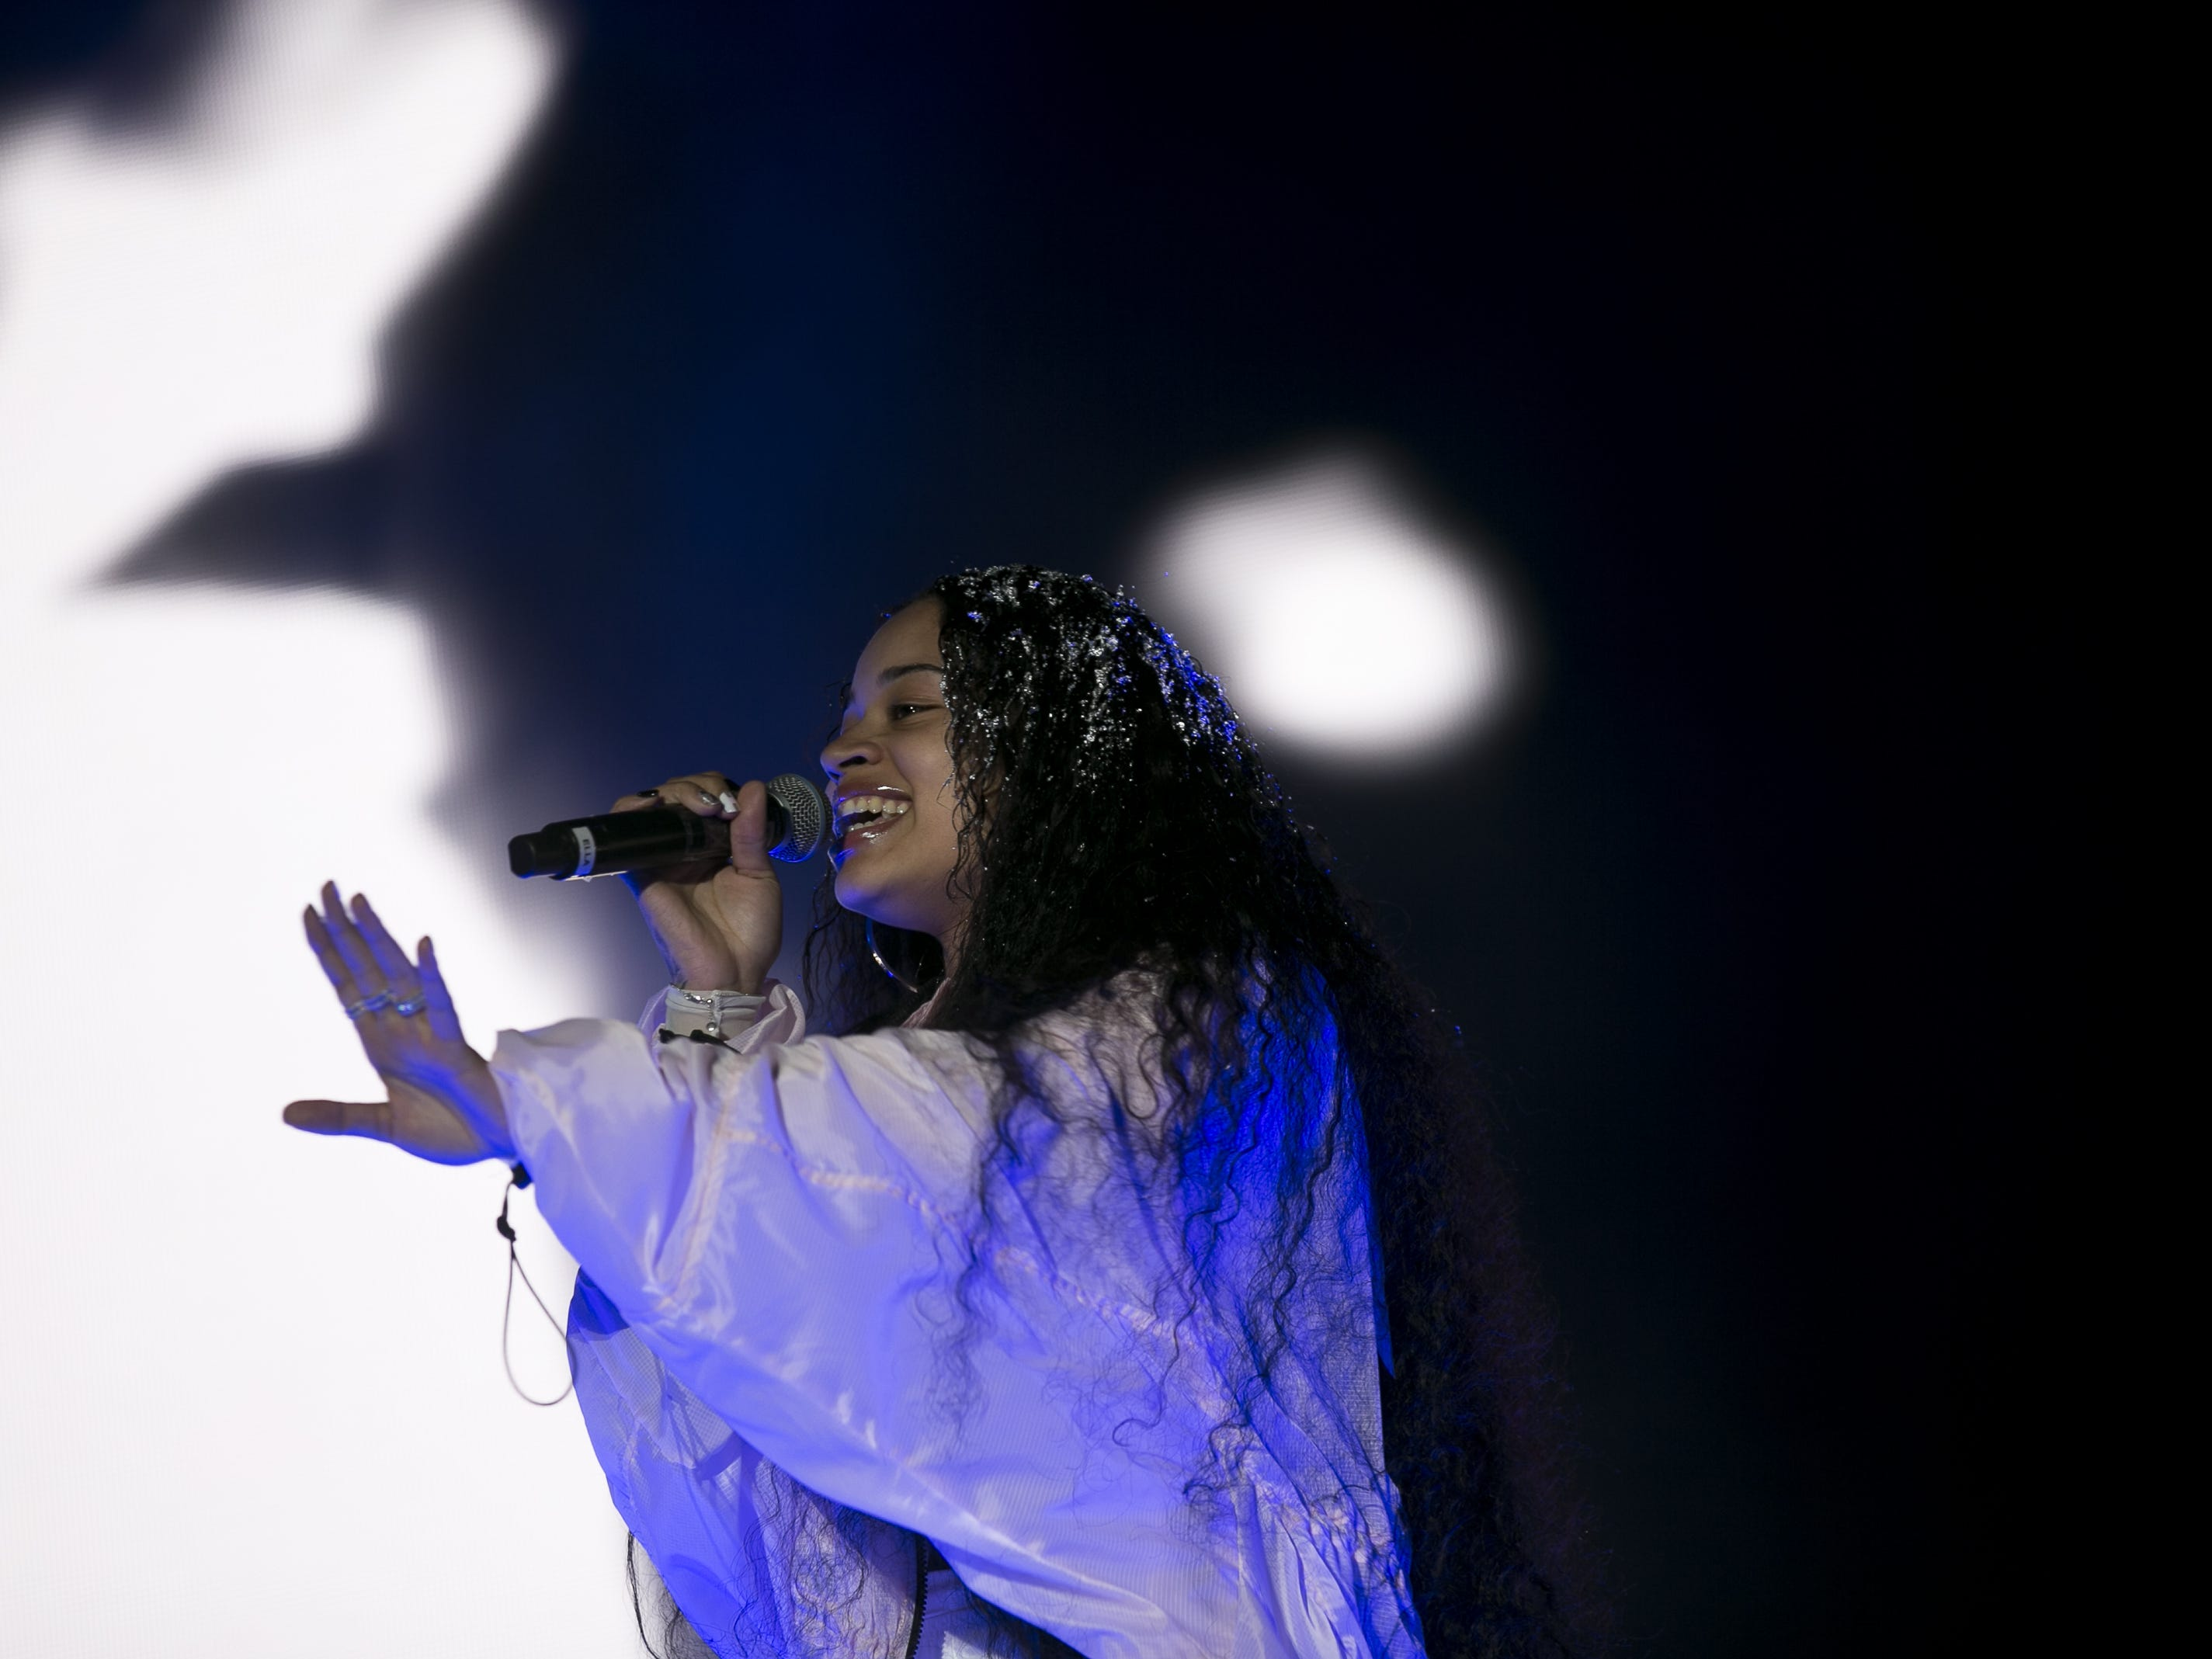 Ella Mai performs on stage at the Coachella Valley Music and Arts Festival in Indio, Calif. on April 12, 2019.